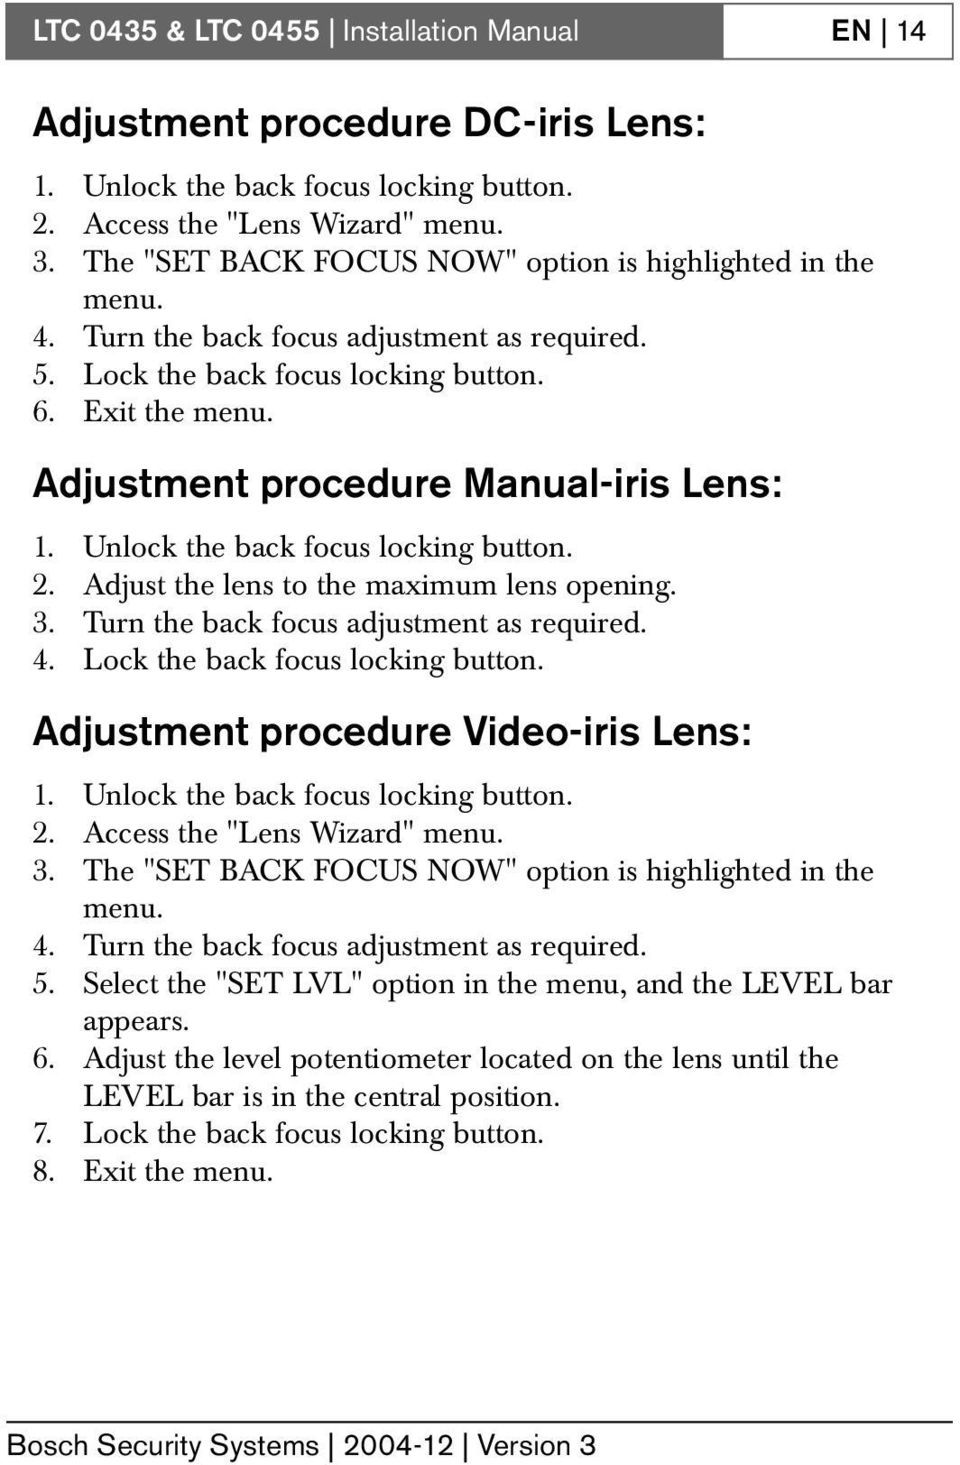 Adjust the lens to the maximum lens opening. 3. Turn the back focus adjustment as required. 4. Lock the back focus locking button. Adjustment procedure Video-iris Lens: 1.